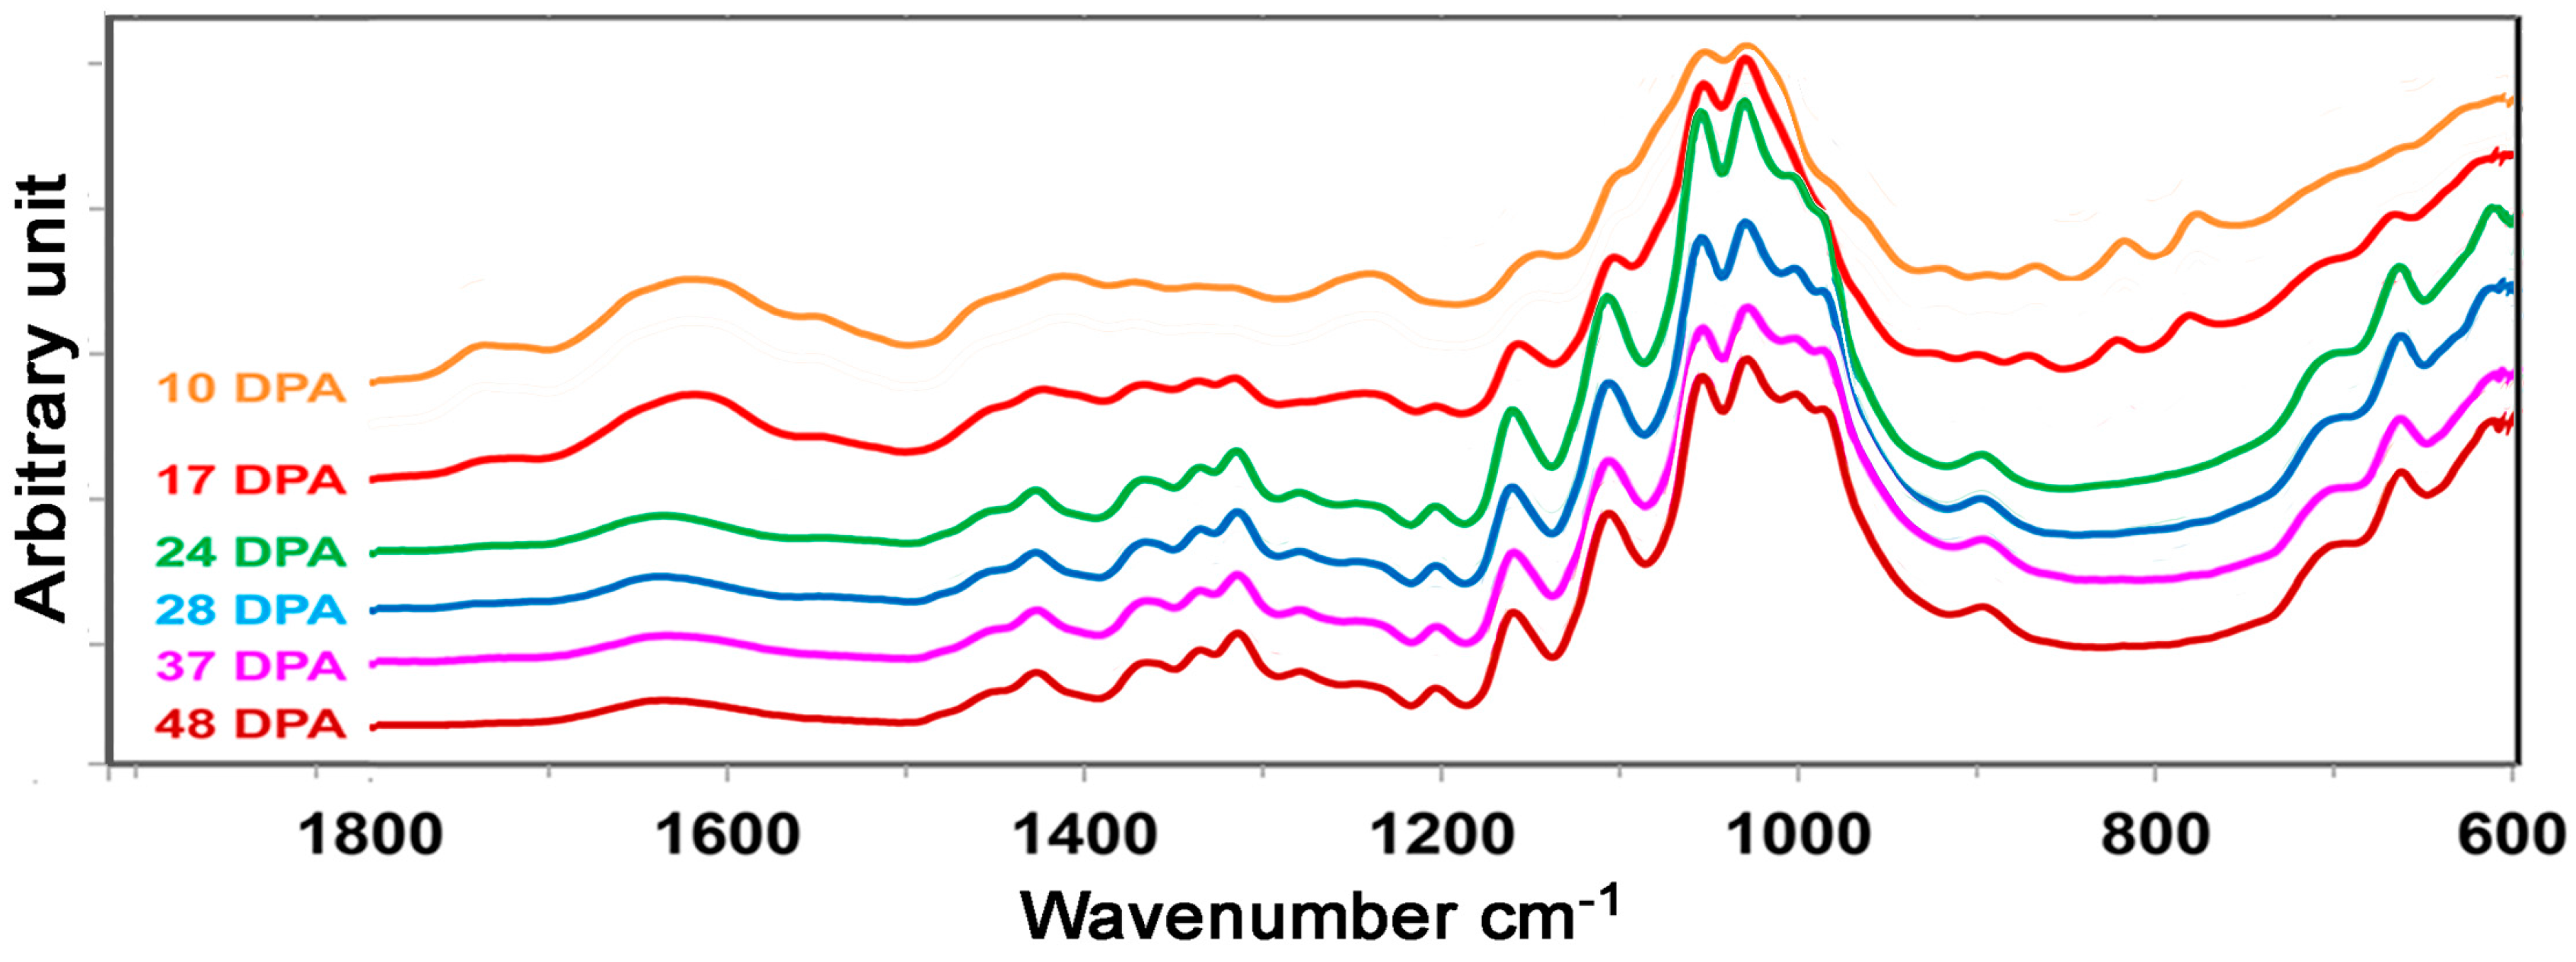 transform infrared spectroscopy essay Fourier transform infrared spectroscopy (ftir spectroscopy) covers a wide range of chemical applications, especially for polymers and organic compounds learn more about the basics of this.